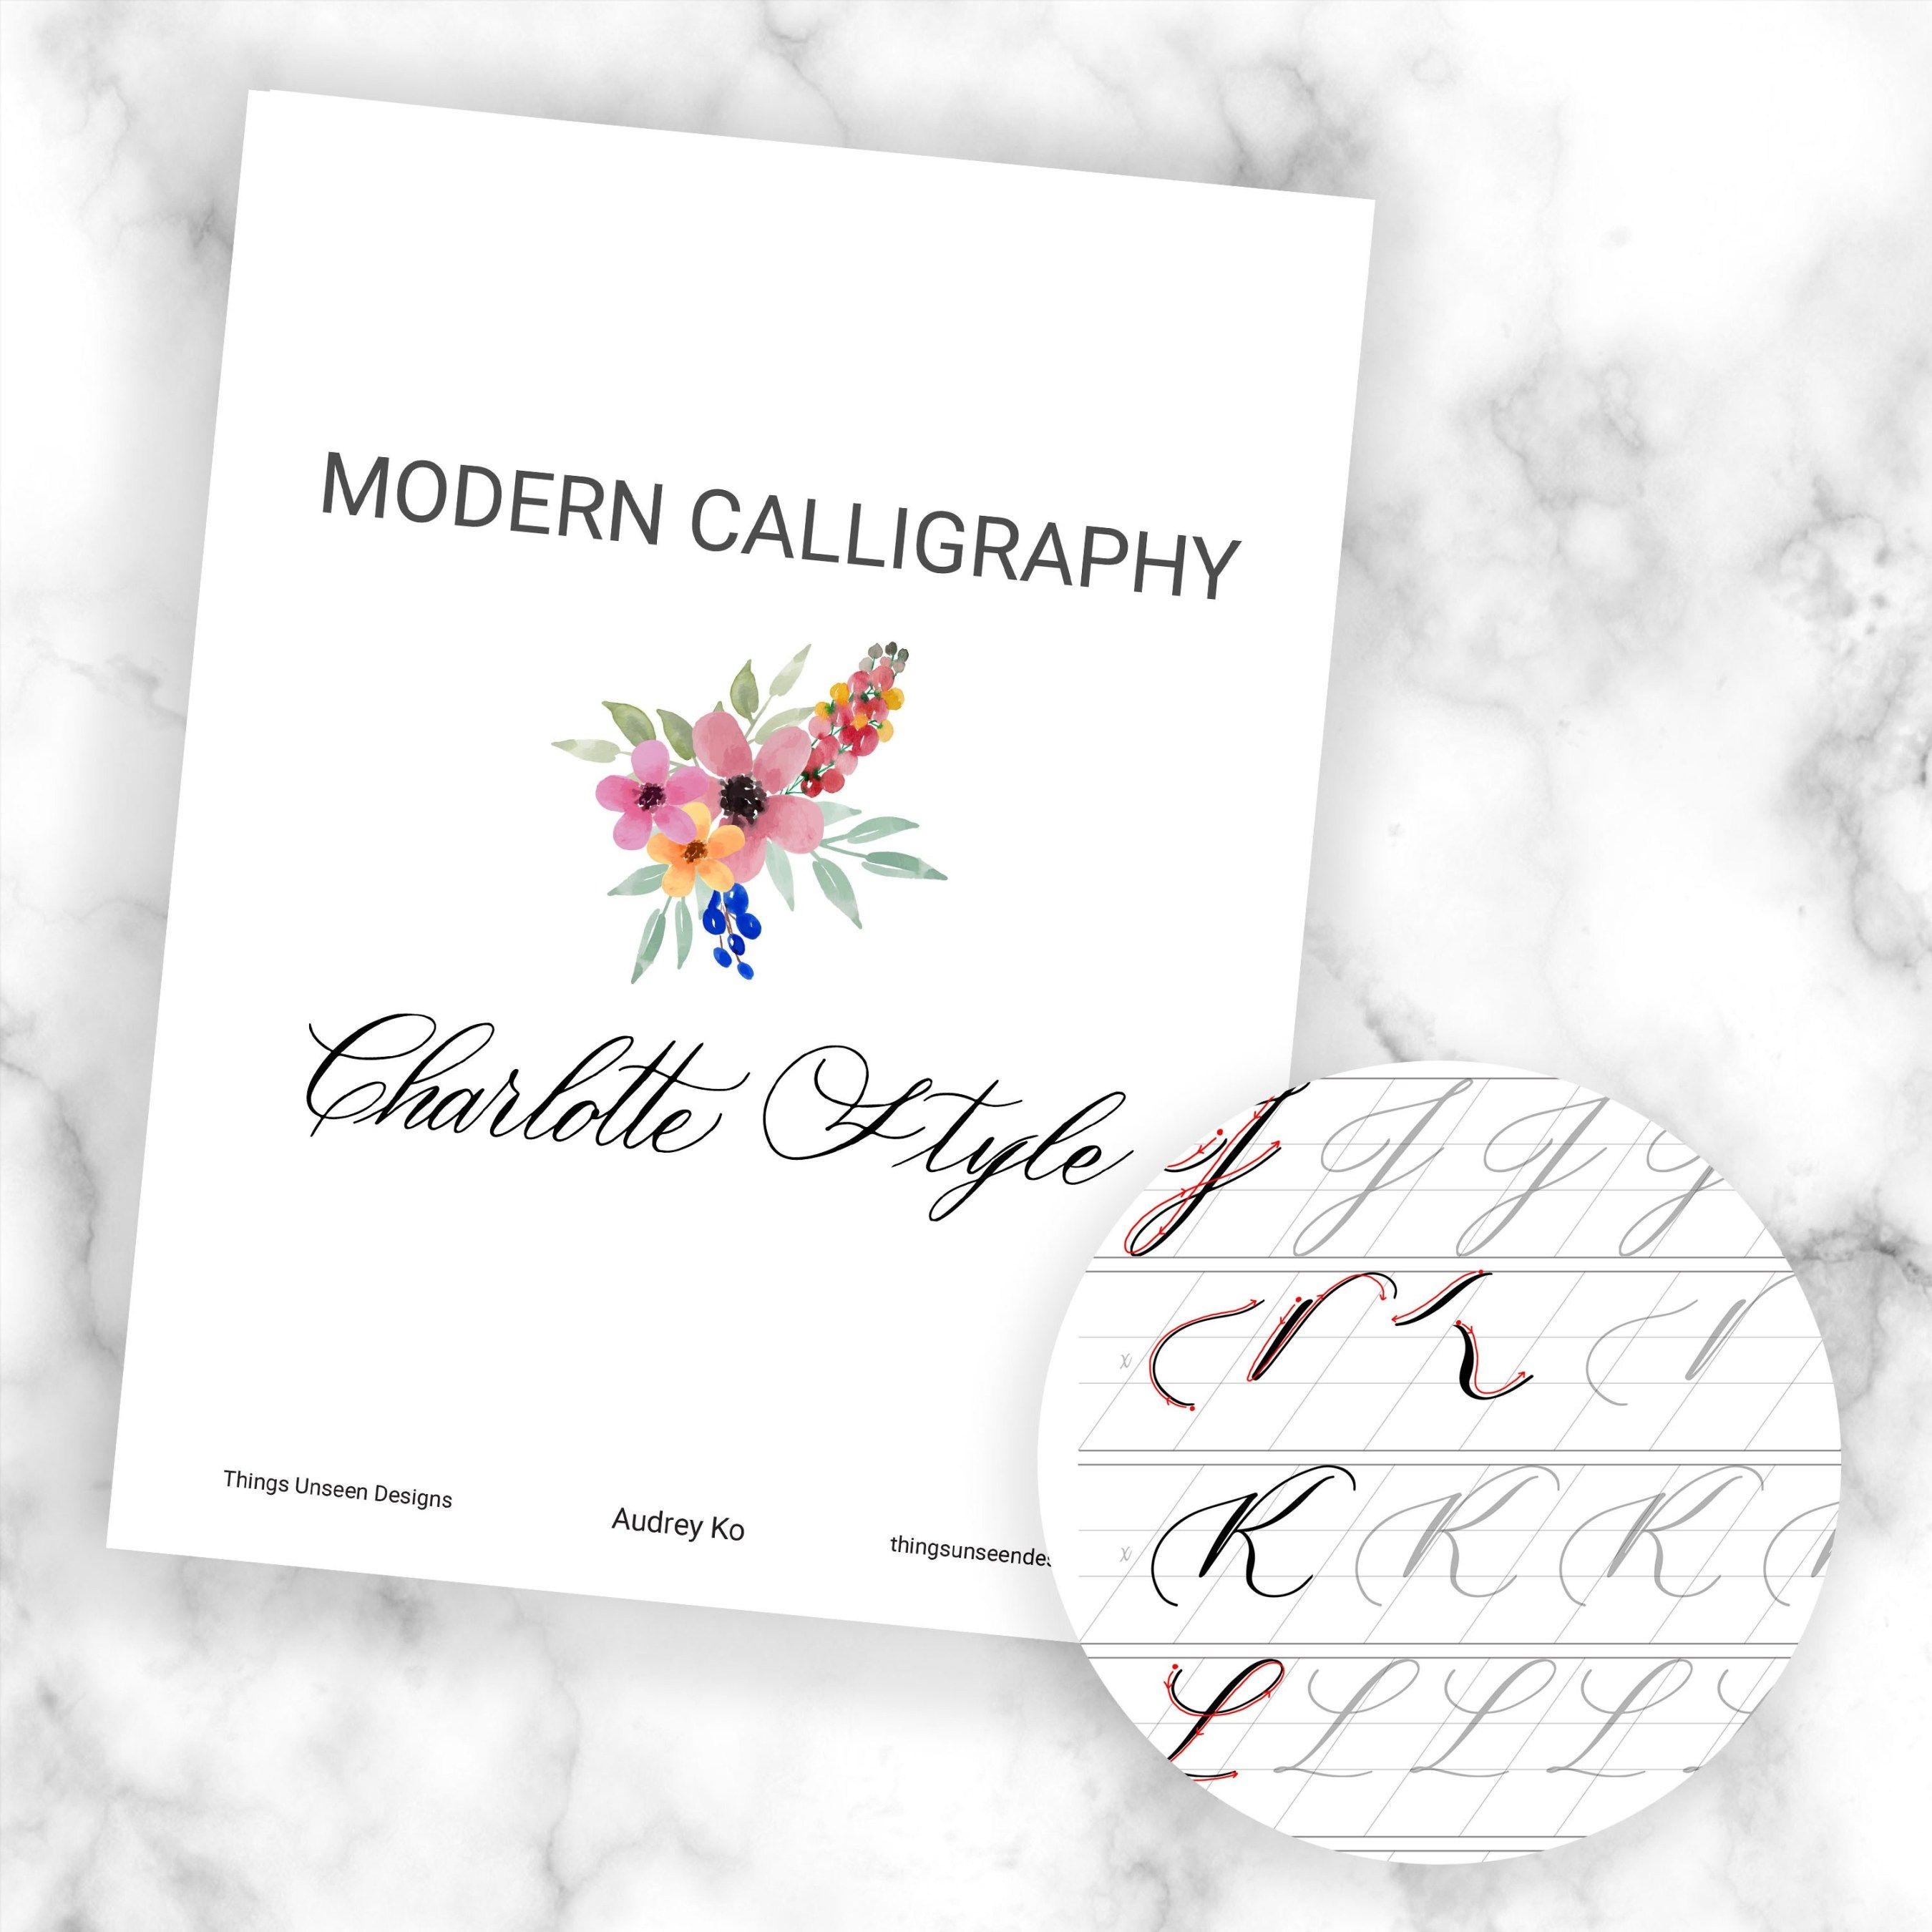 Pin On Calligraphy Inspiration And Resources